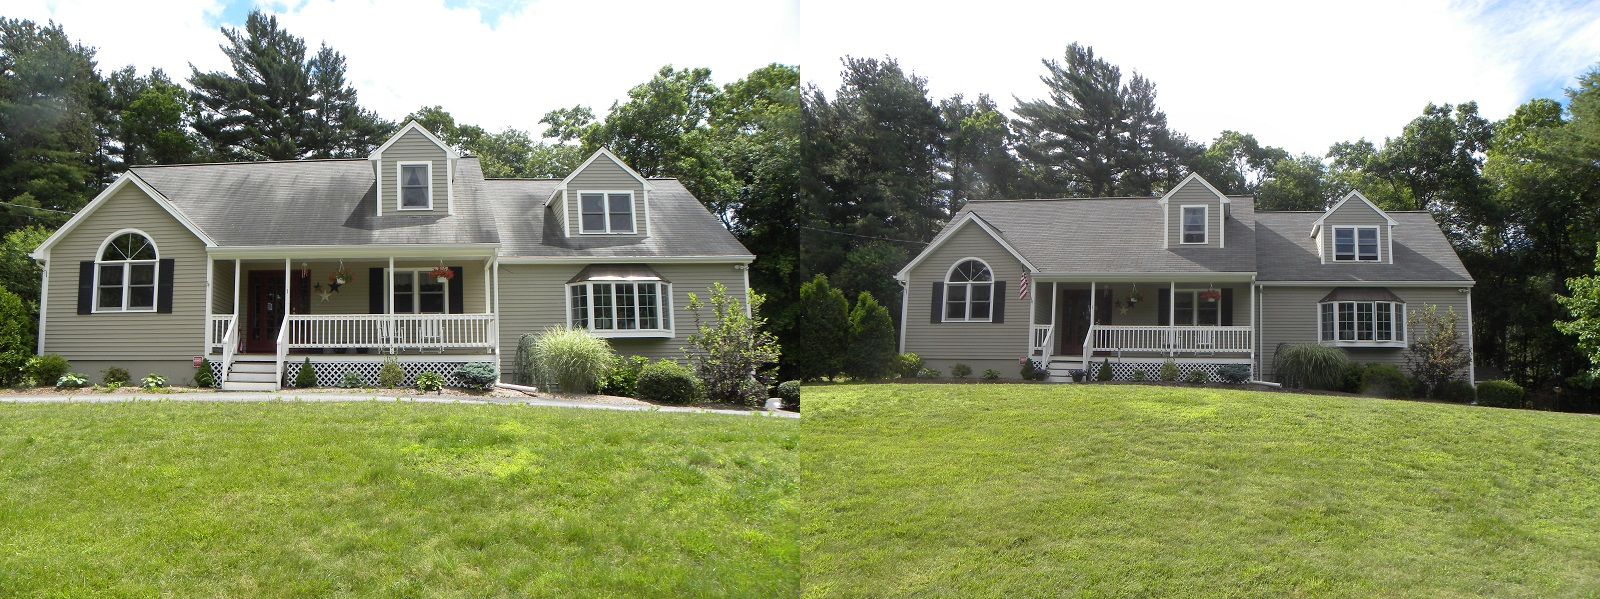 ... Before After Roof Cleaning Cape Cod Ma ...